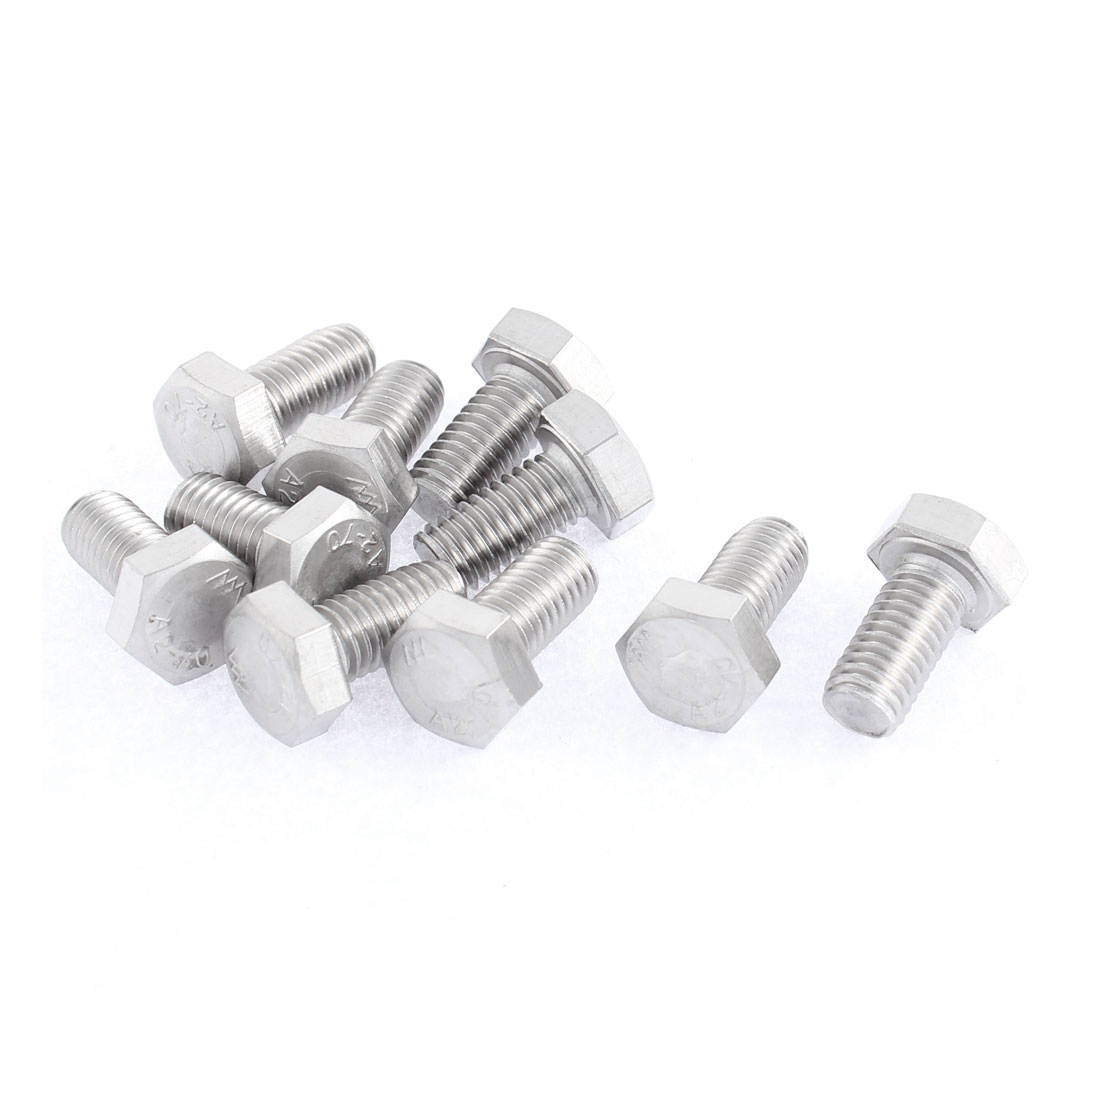 M8 x 16mm Metric 304 Stainless Steel Fully Threaded Hex Head Screw Bolt 10 Pcs